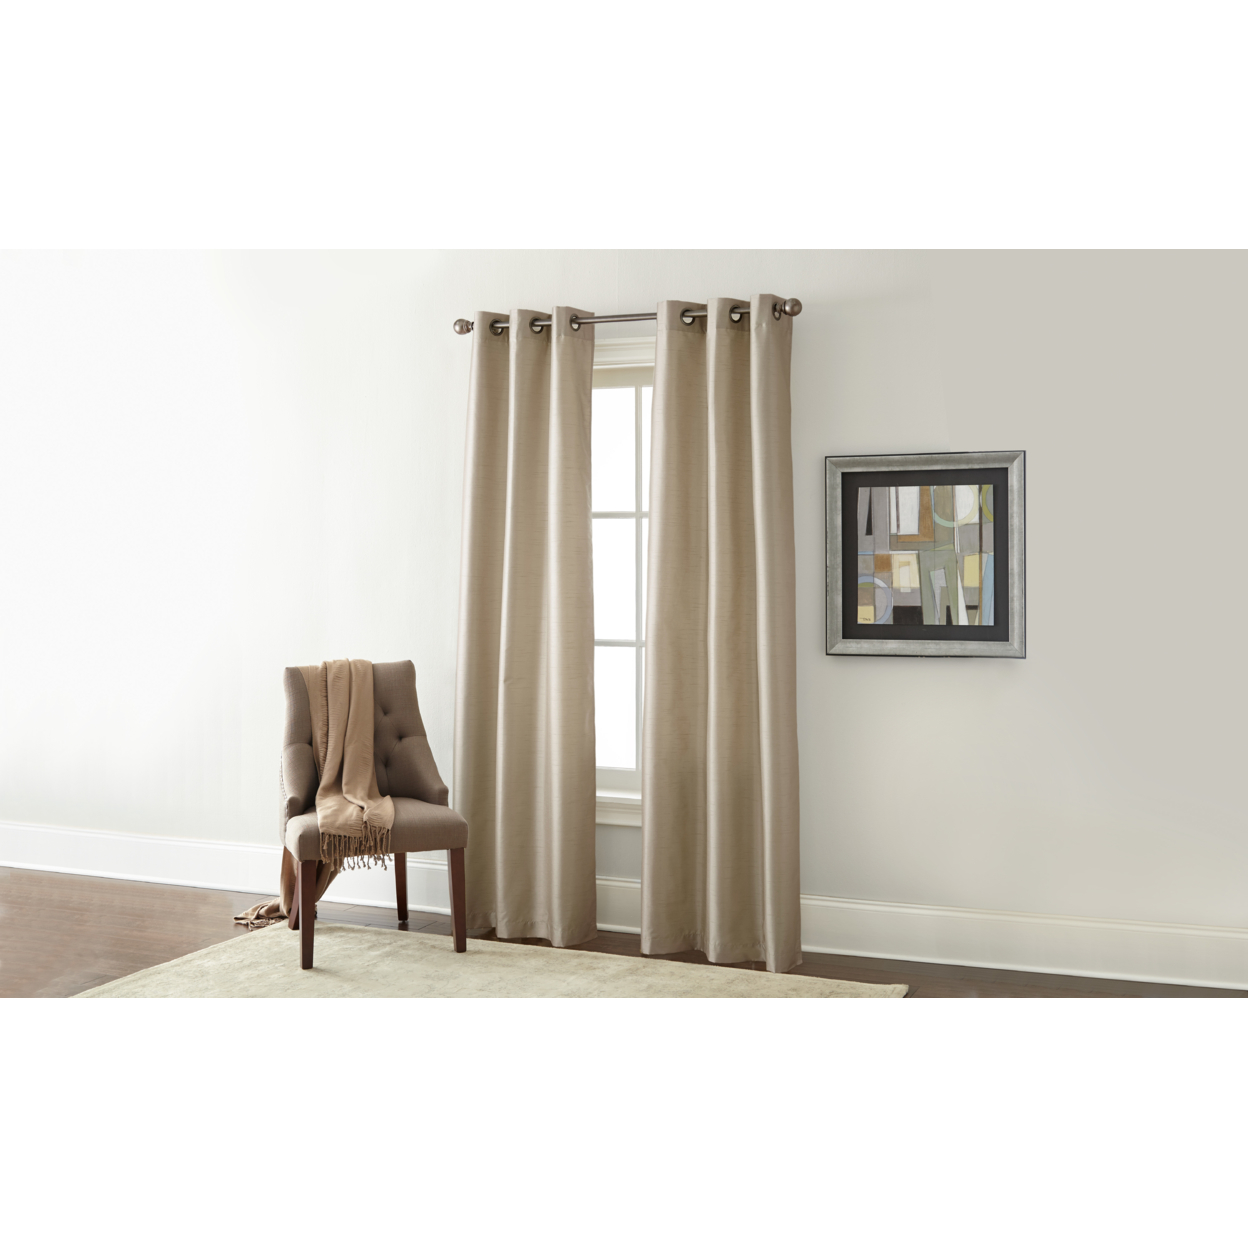 2 Pack Black Out Curtains